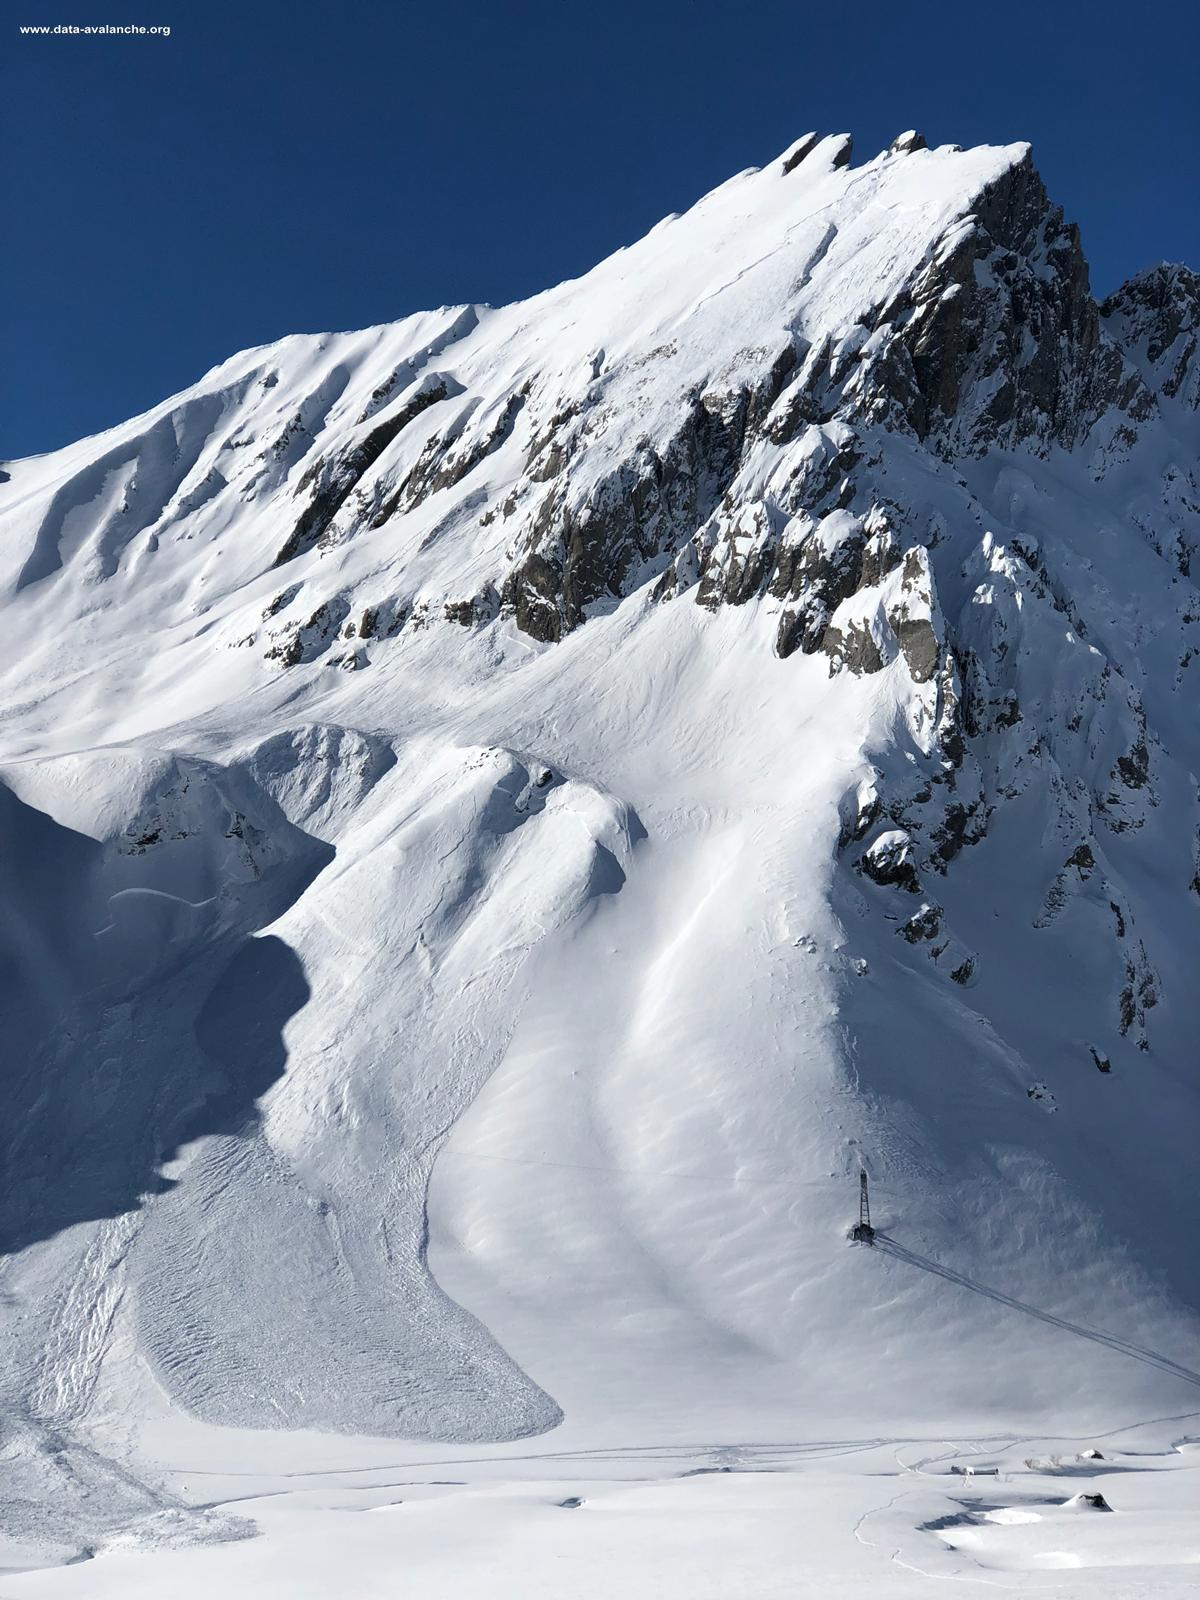 Avalanche Beaufortain, Col du Bonhomme - Photo 1